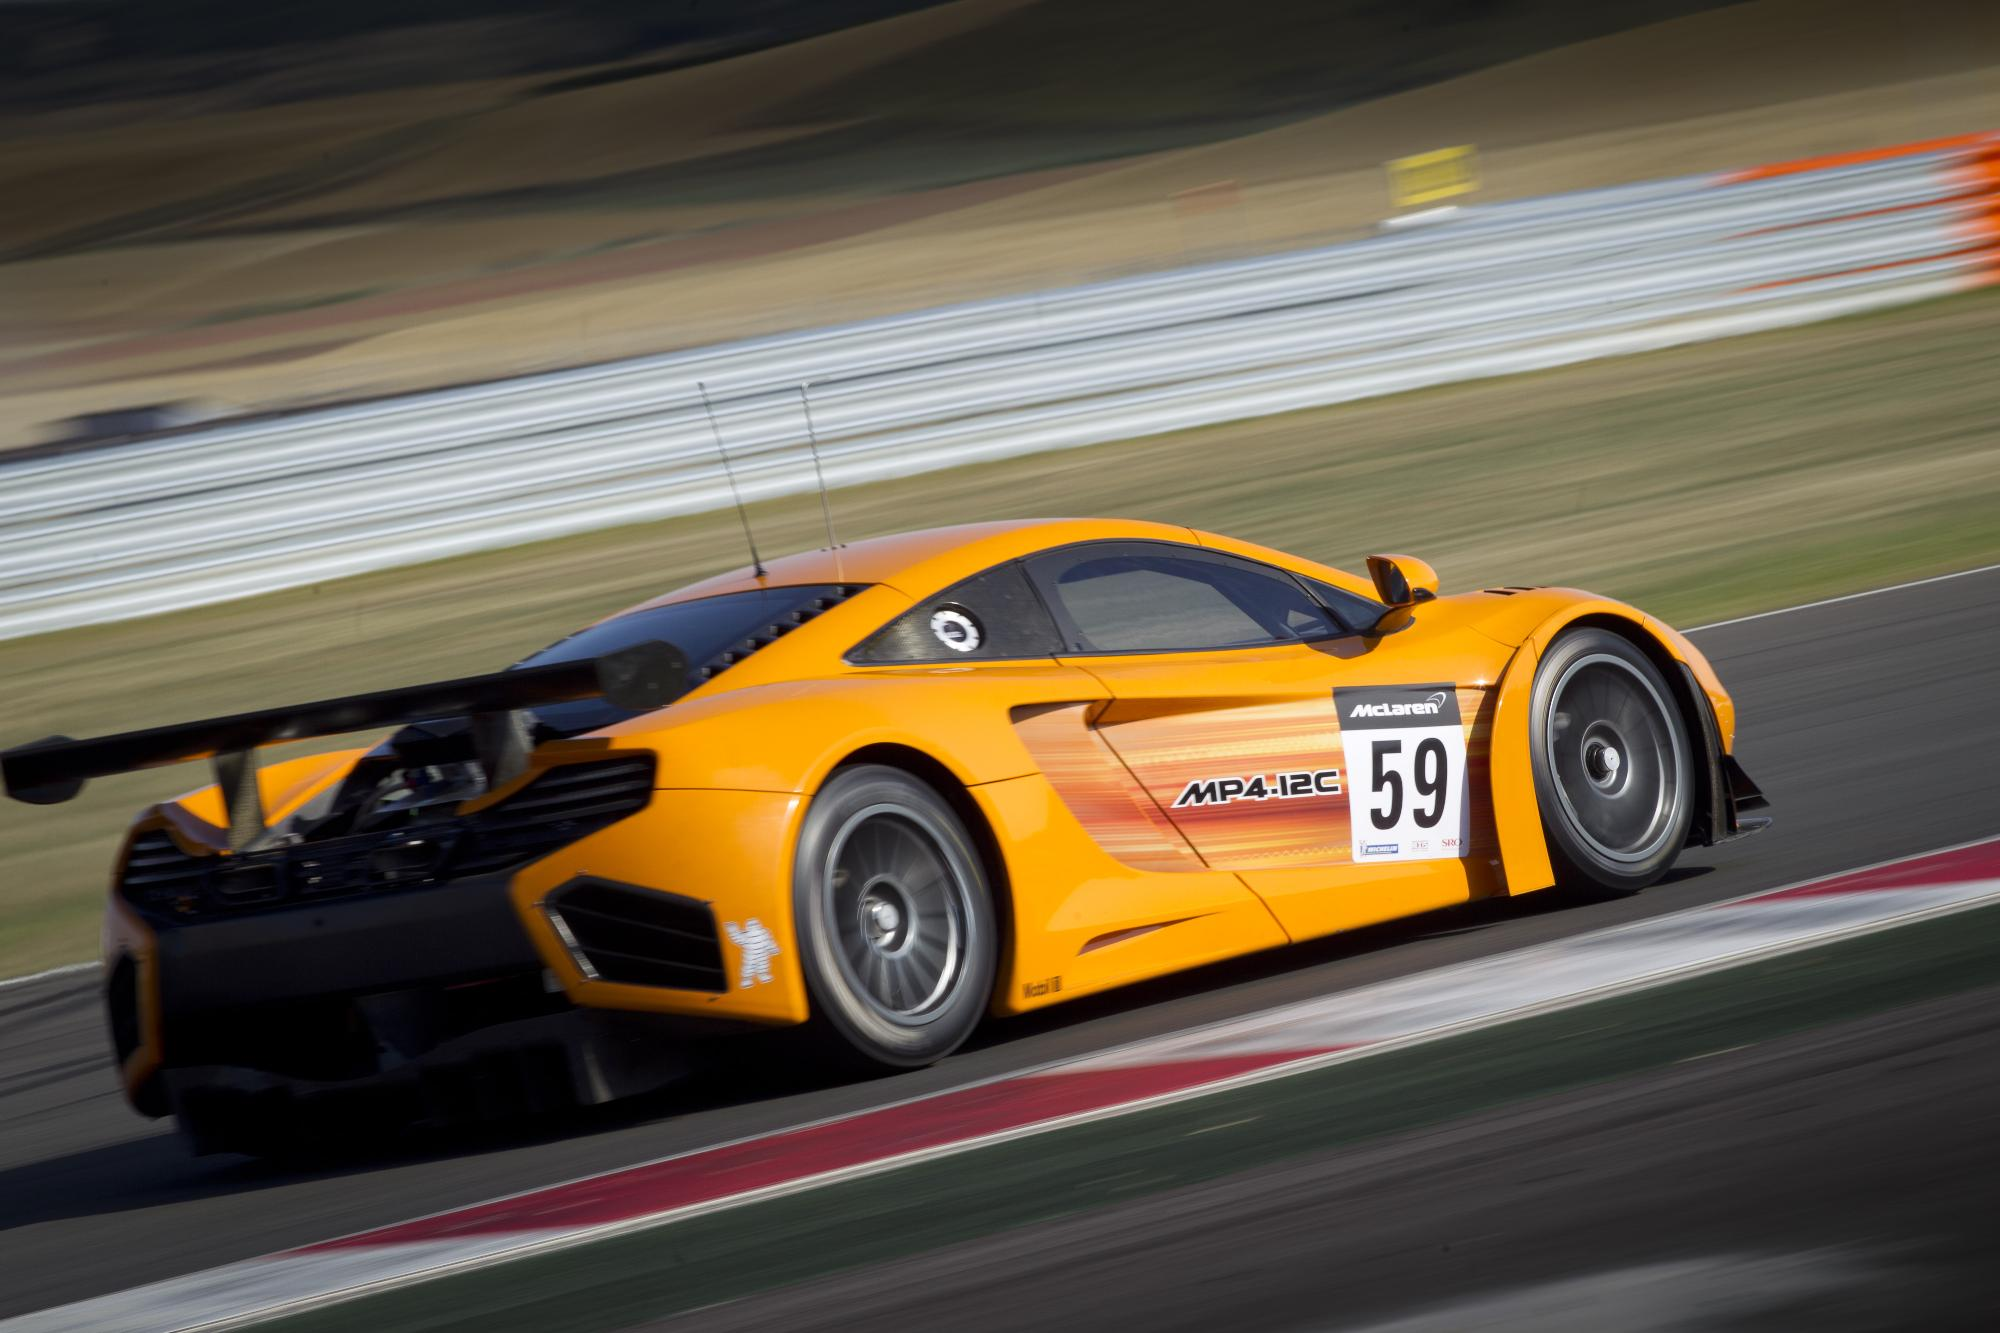 mclaren mp4 12c gt3 trio to enter total 24 hours of spa autoevolution. Black Bedroom Furniture Sets. Home Design Ideas